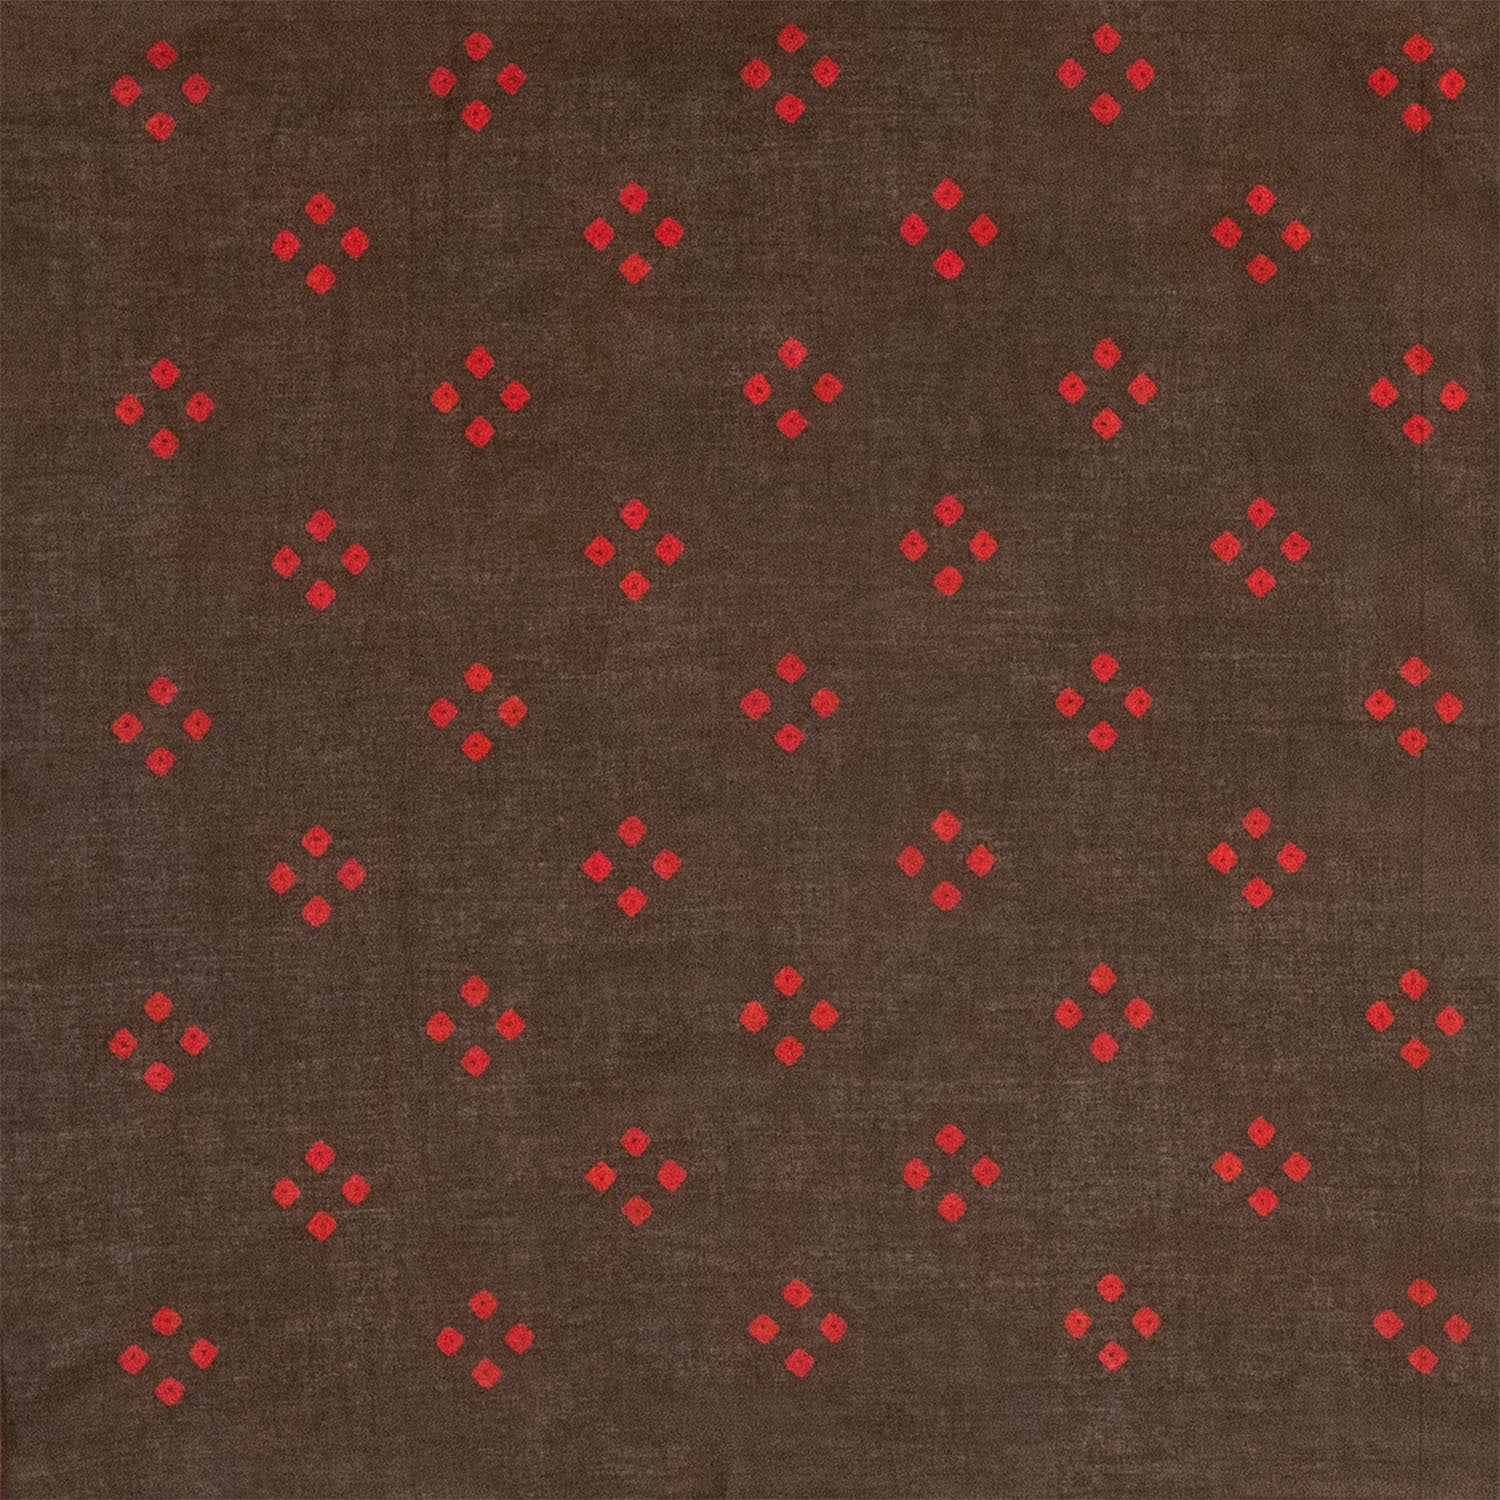 "Brown & Red ""Spot'd"" Handkerchief"